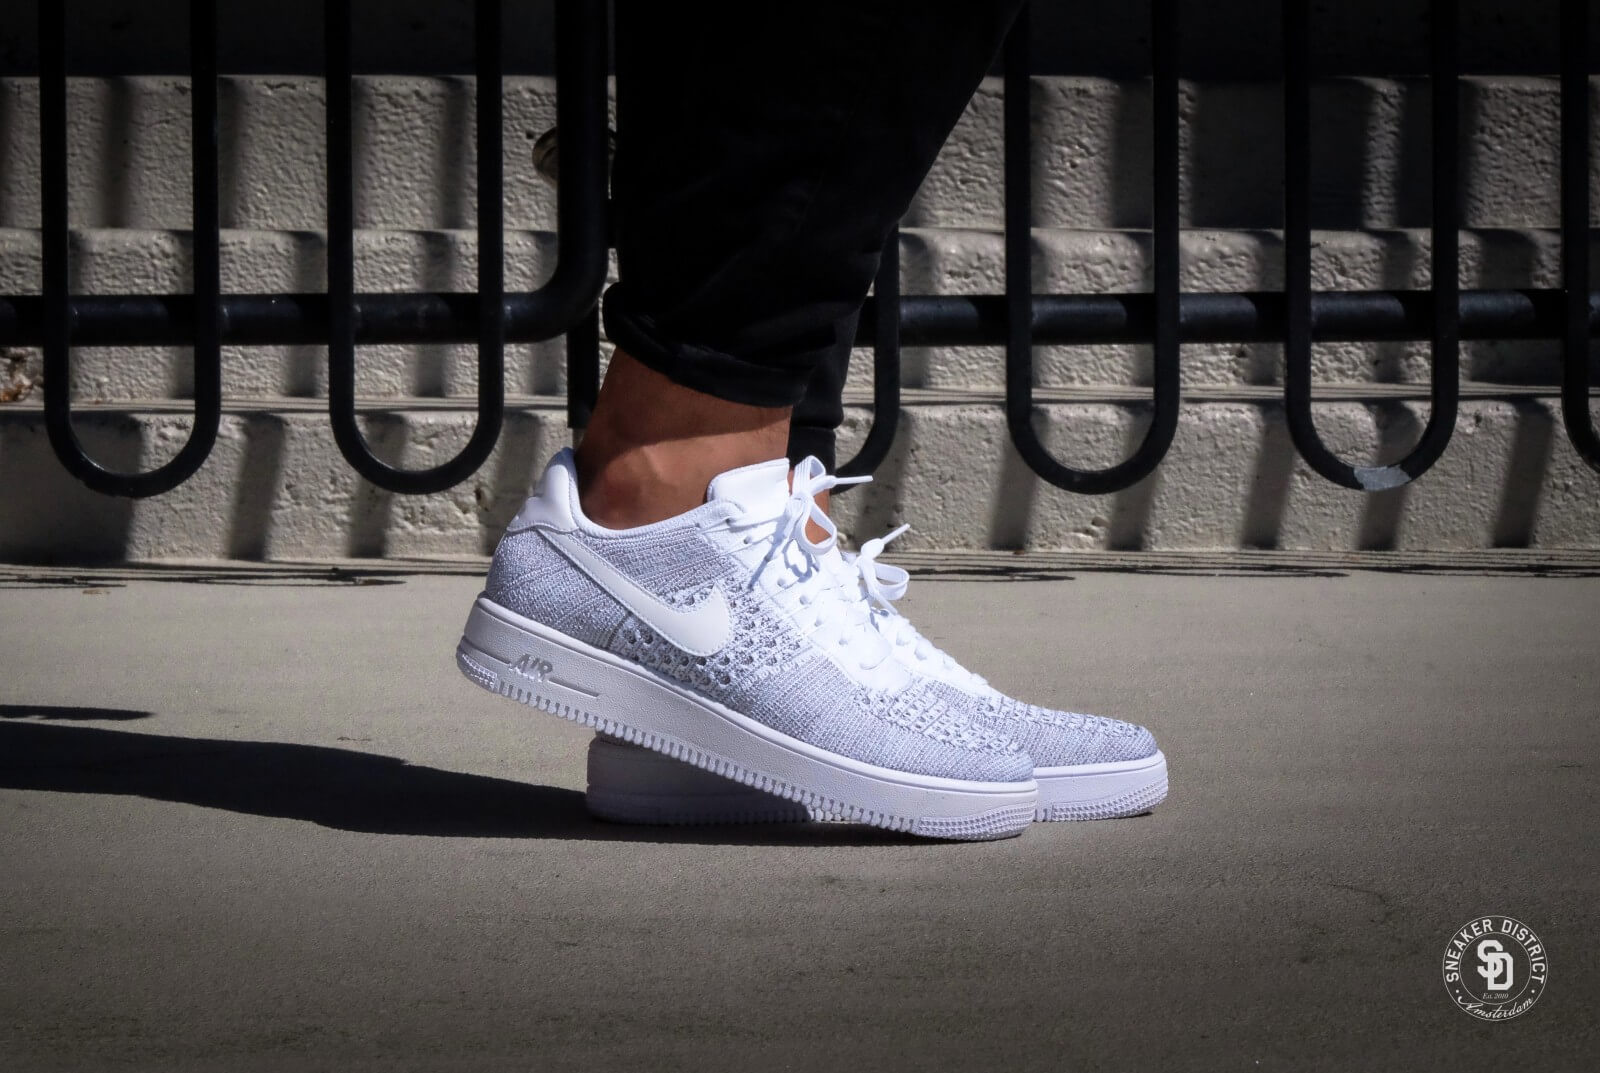 Schöne Nike Air Force 1 Ultra Flyknit Low Herren Schuhe